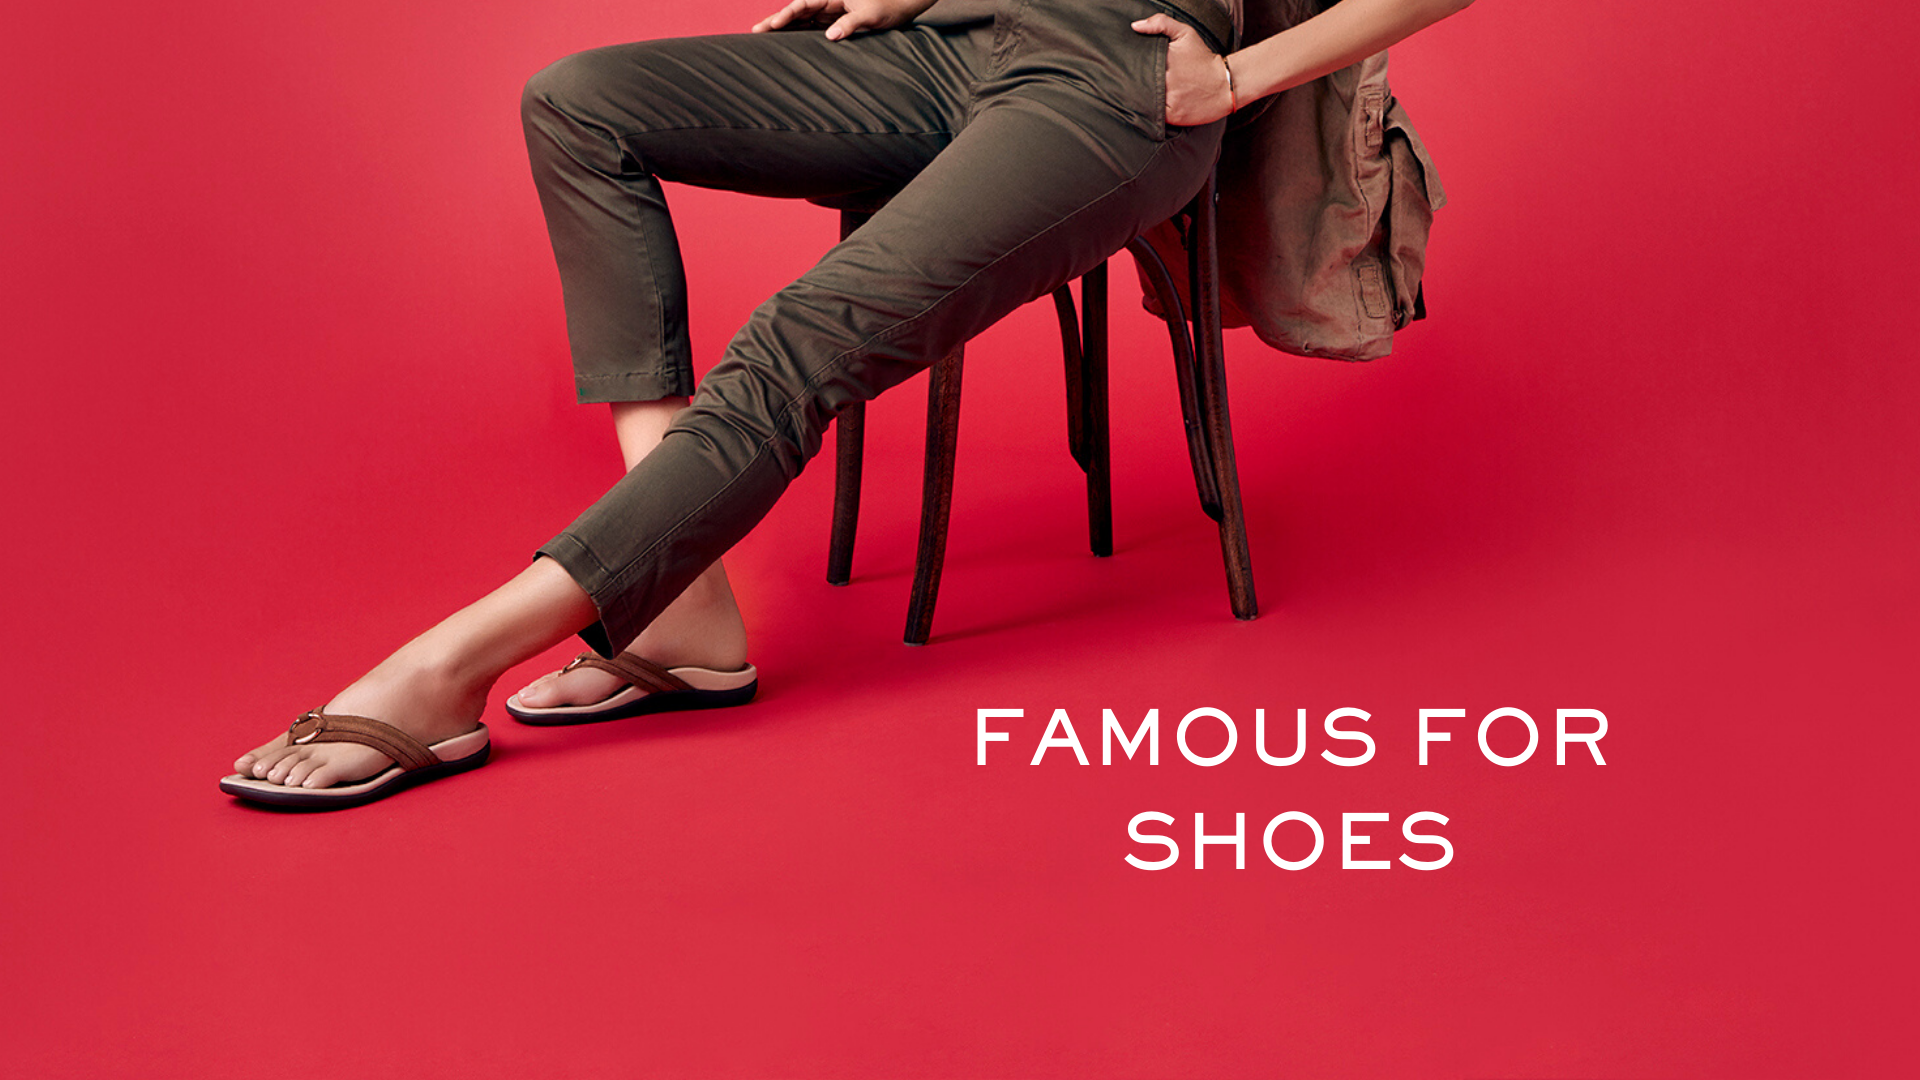 Famous for Shoes